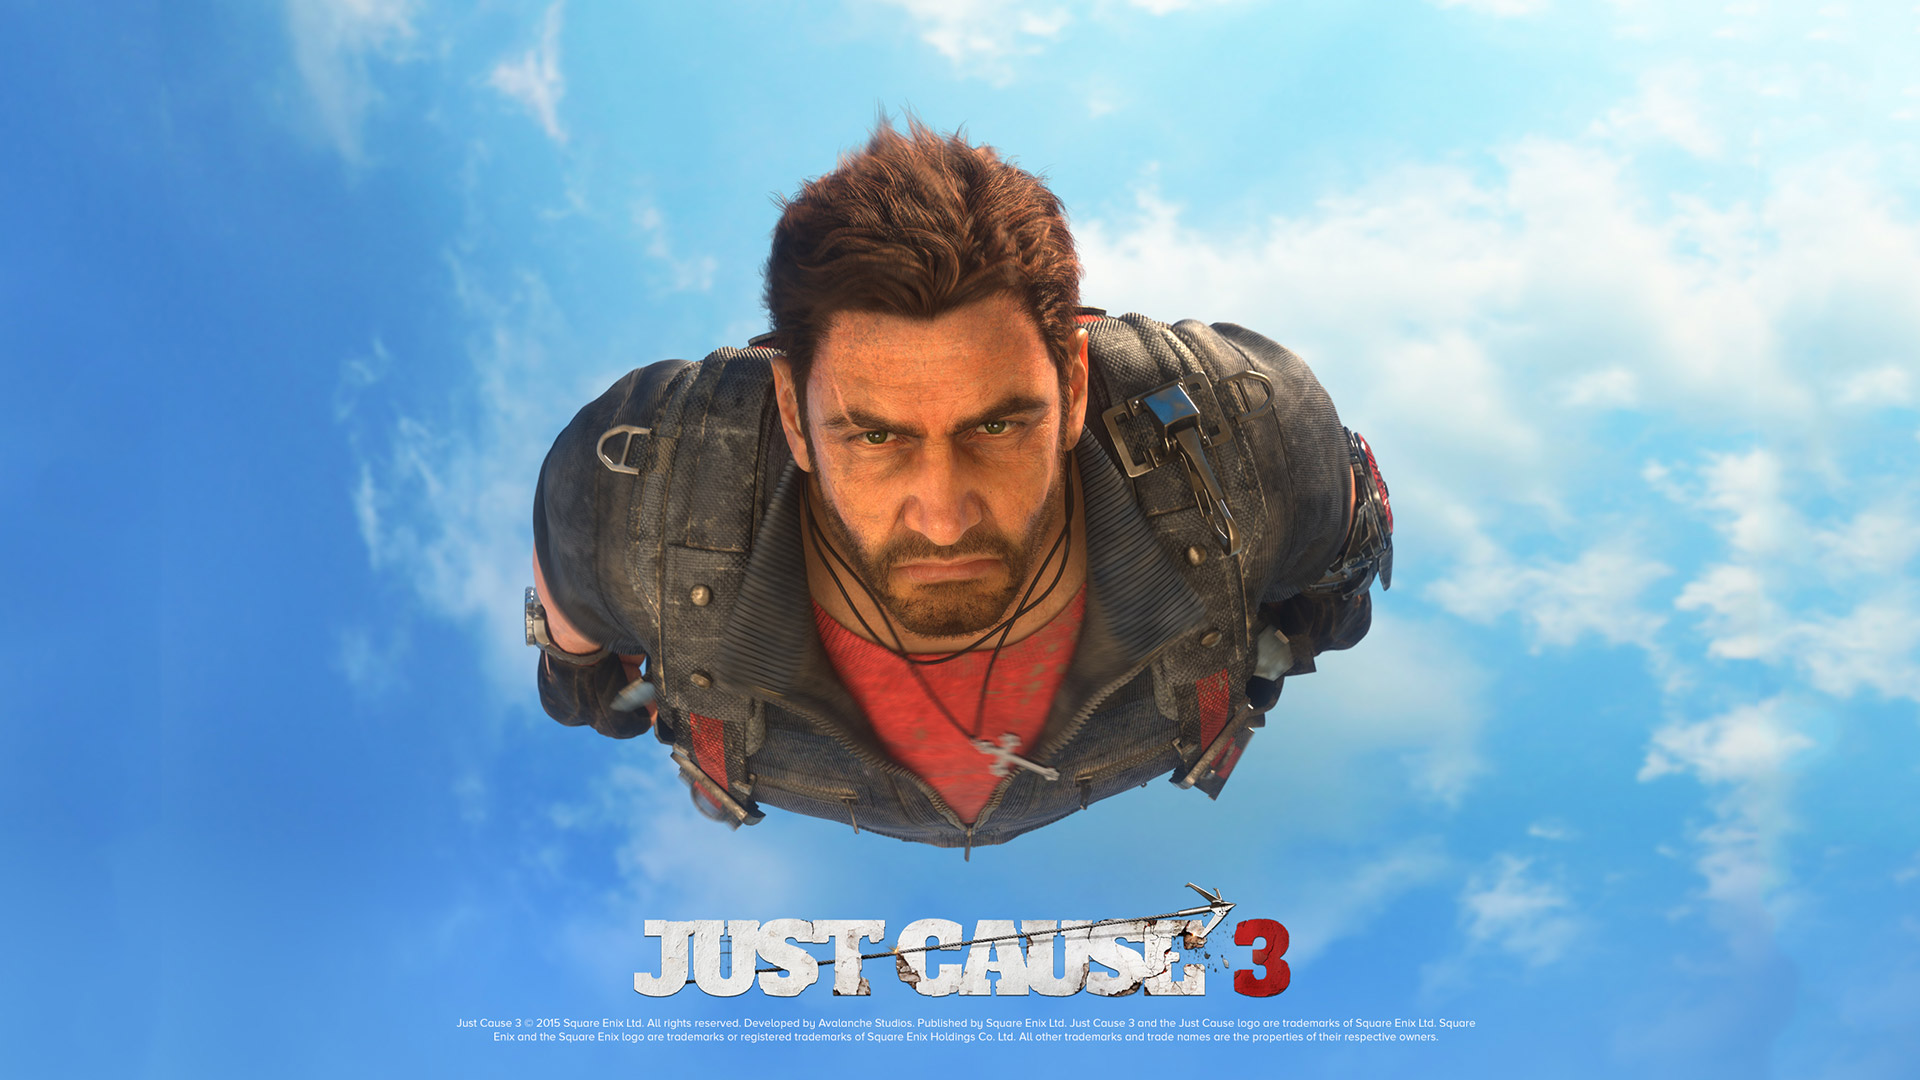 Just Cause 3 Wallpaper in 1920x1080